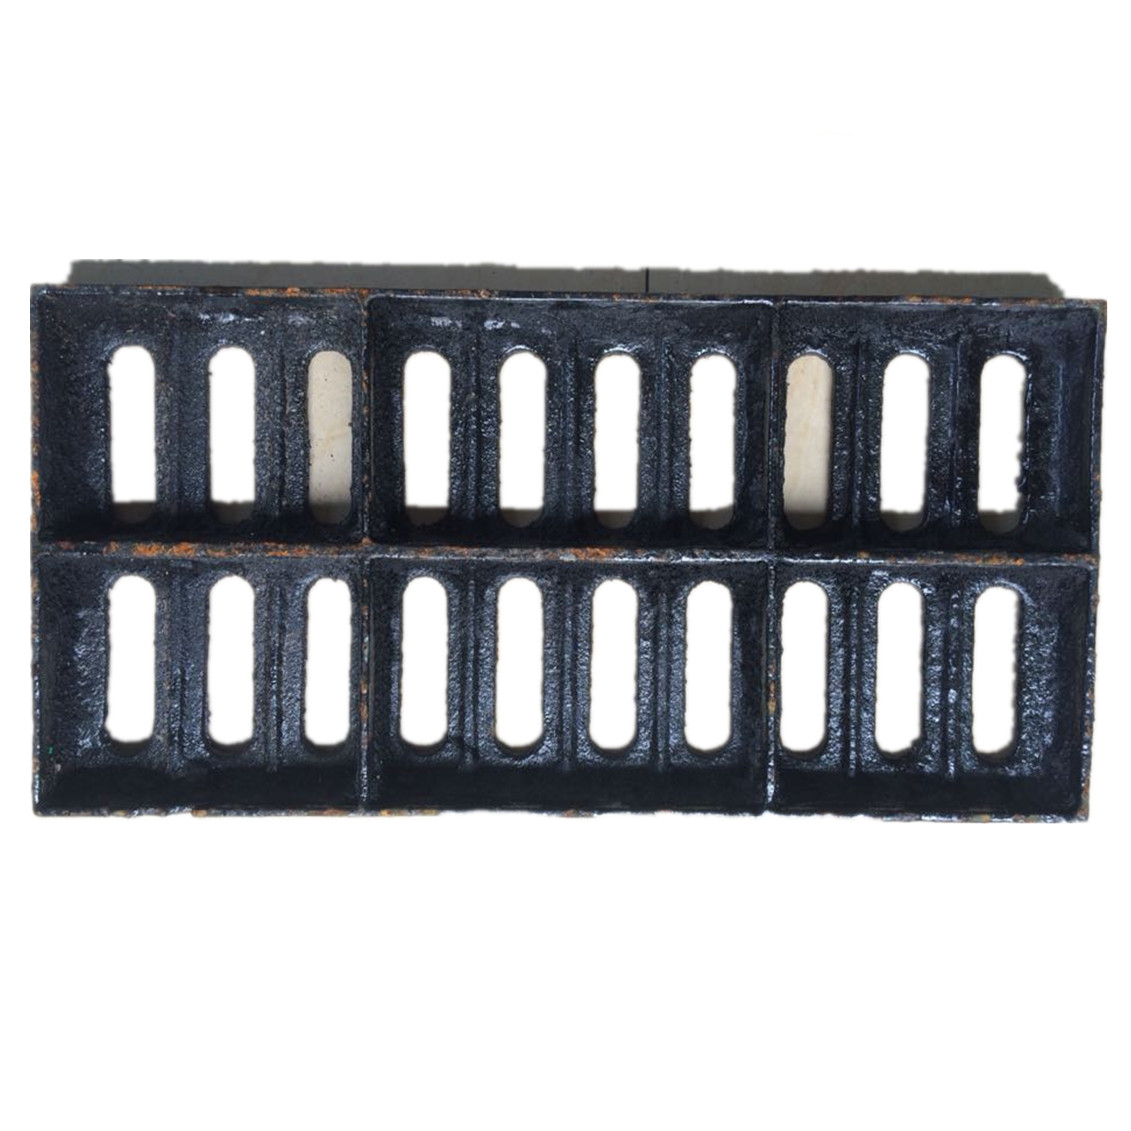 Nắp cống  Nodular cast iron manhole sewer grate ditch cover rain drain ditch cover kitchen trench c